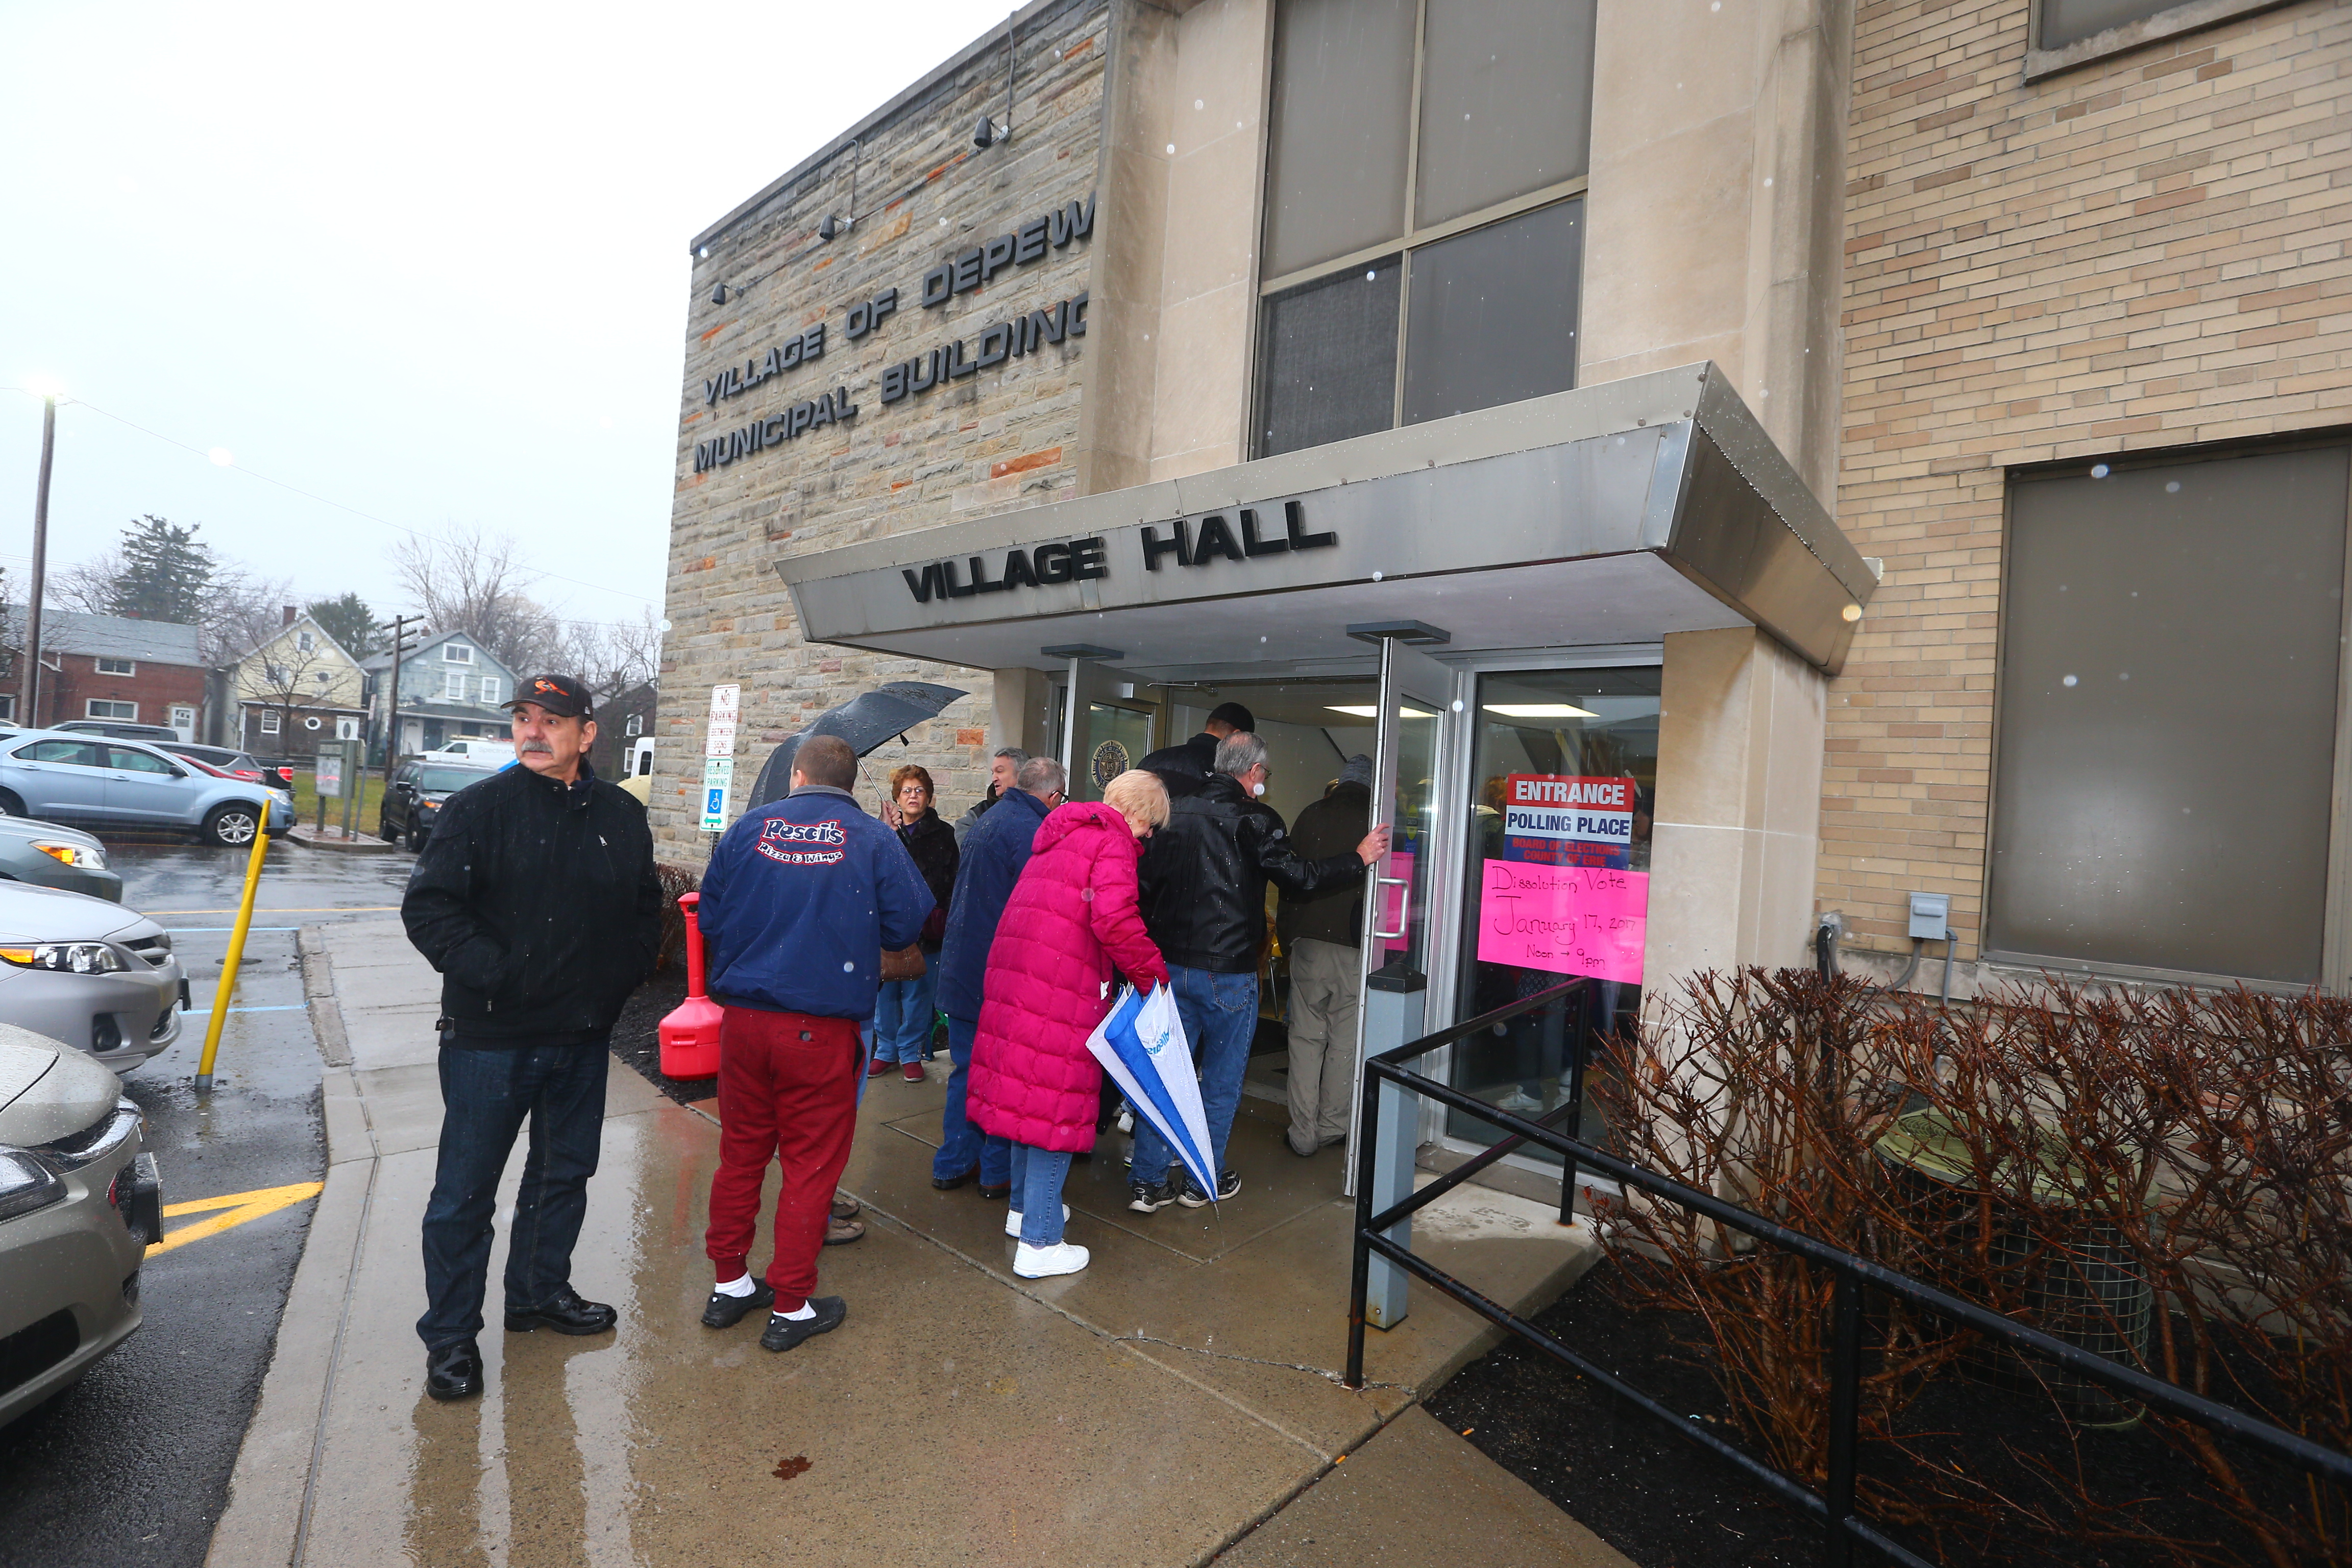 Depew residents line up  outside their Village Hall to vote on whether to dissolve their village government and merge with the towns of Lancaster and Cheektowaga on  Tuesday,  Jan. 17, 2017. (John Hickey/Buffalo News)